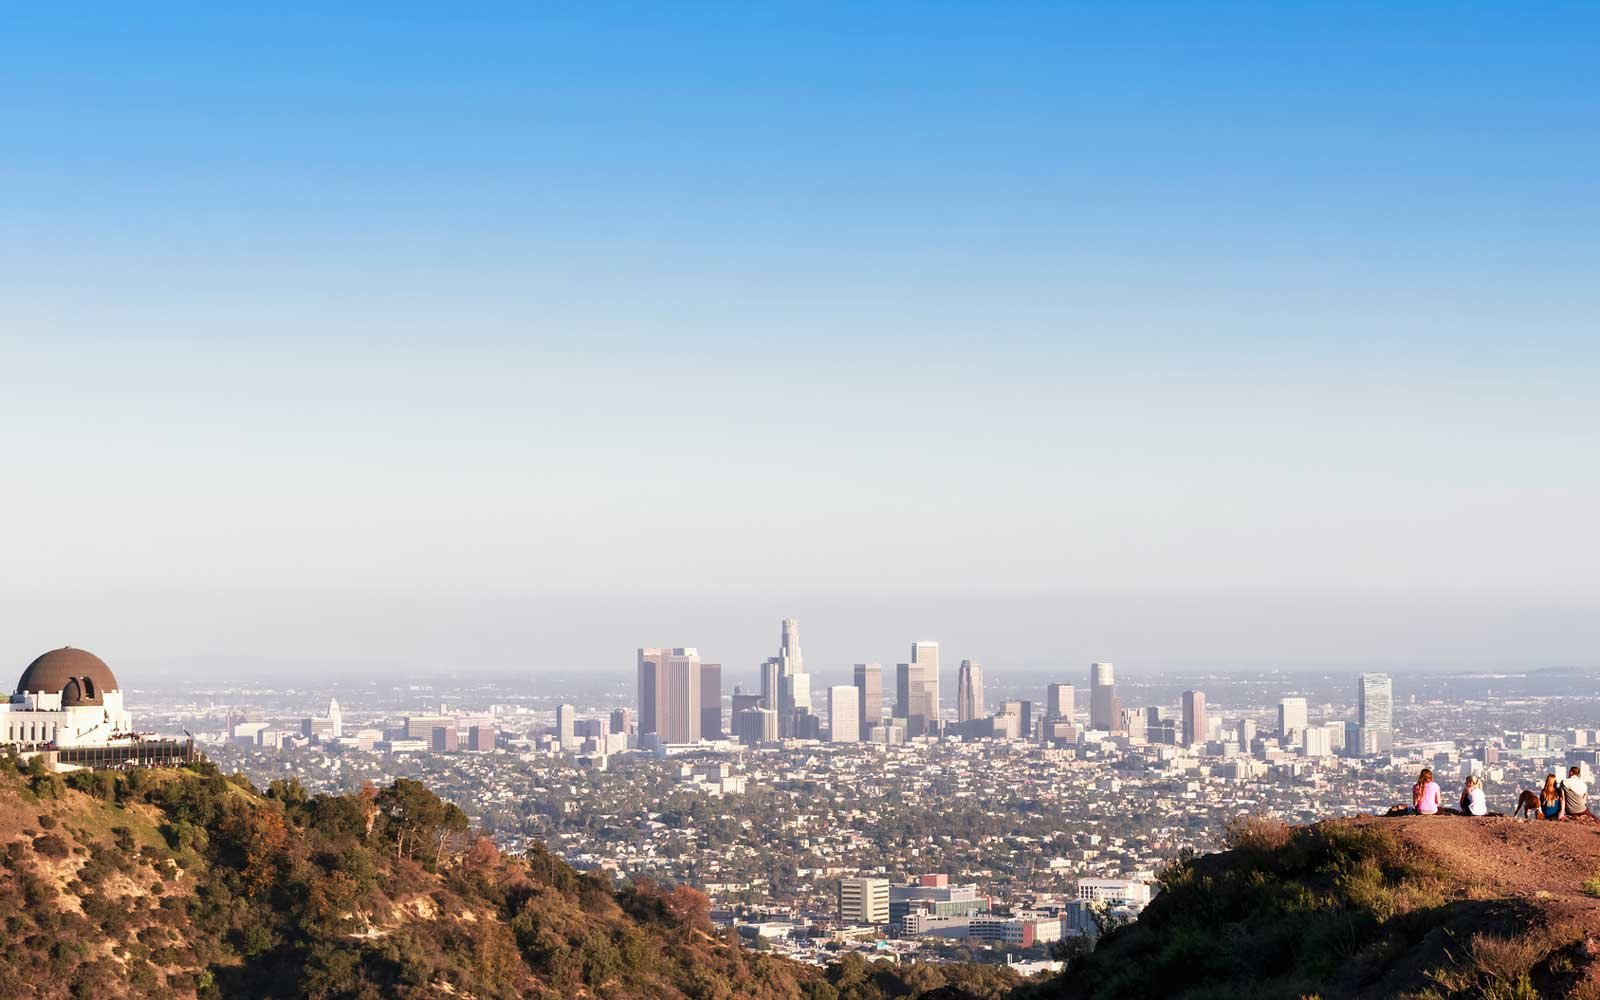 Cheap Delta Flights to Los Angeles